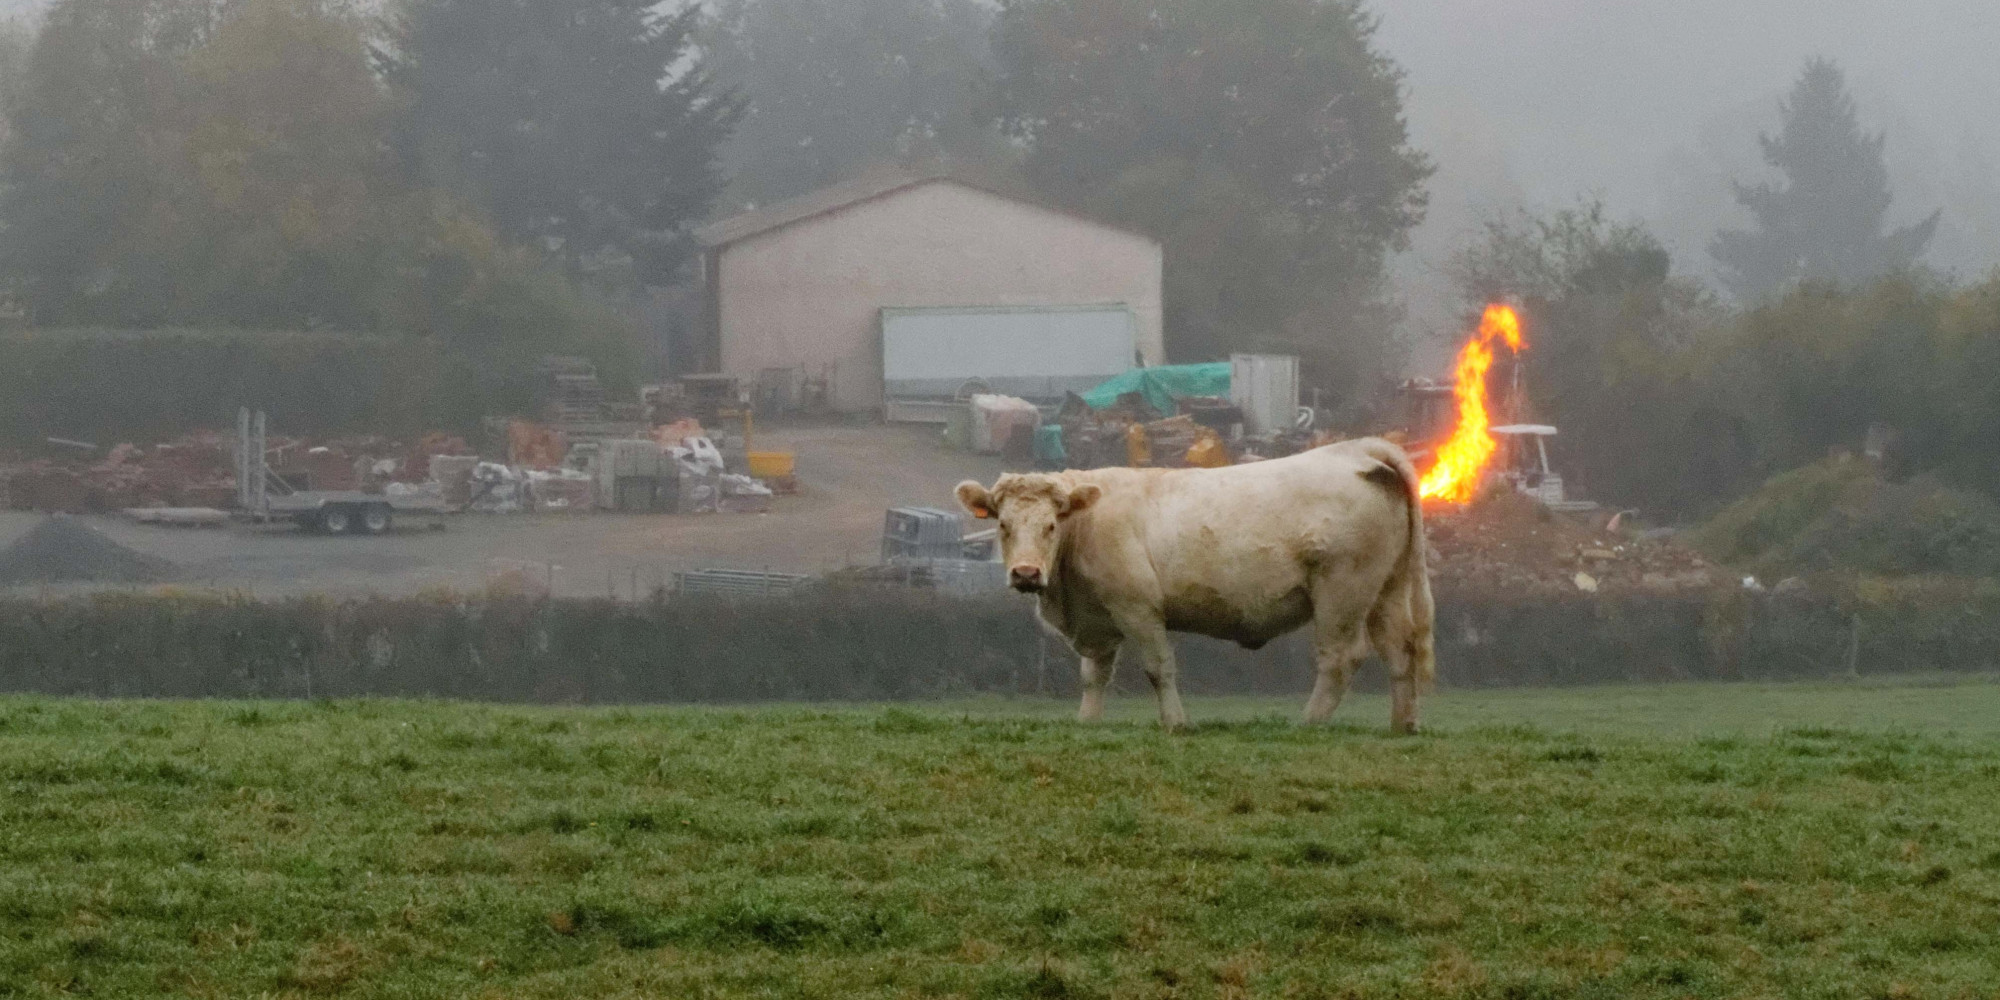 http://www.huffingtonpost.co.uk/2014/01/28/farting-cows-methane-gas-explosion-german-dairy-farm_n_4678584.html